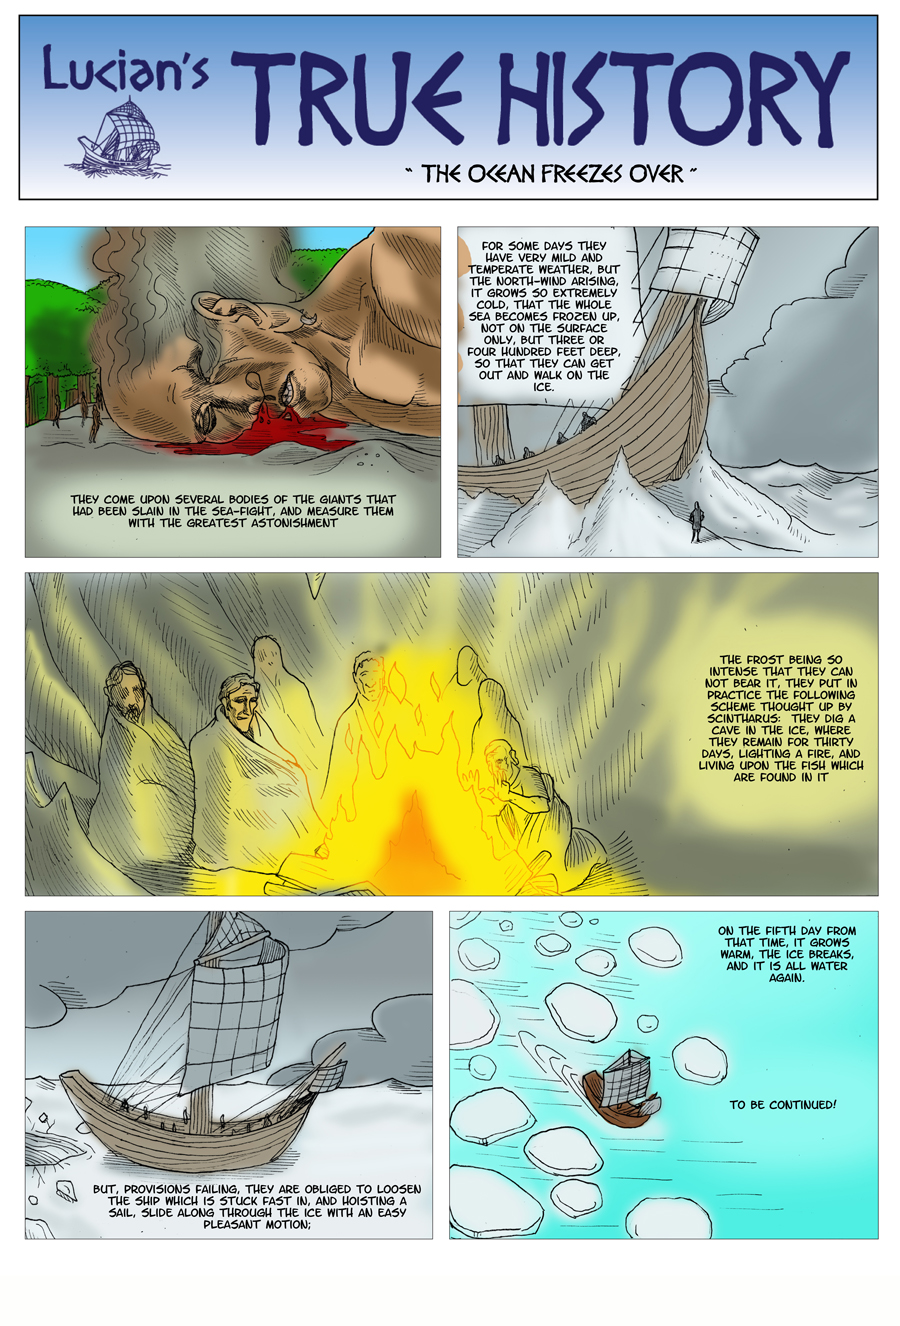 Part 1: Page 22